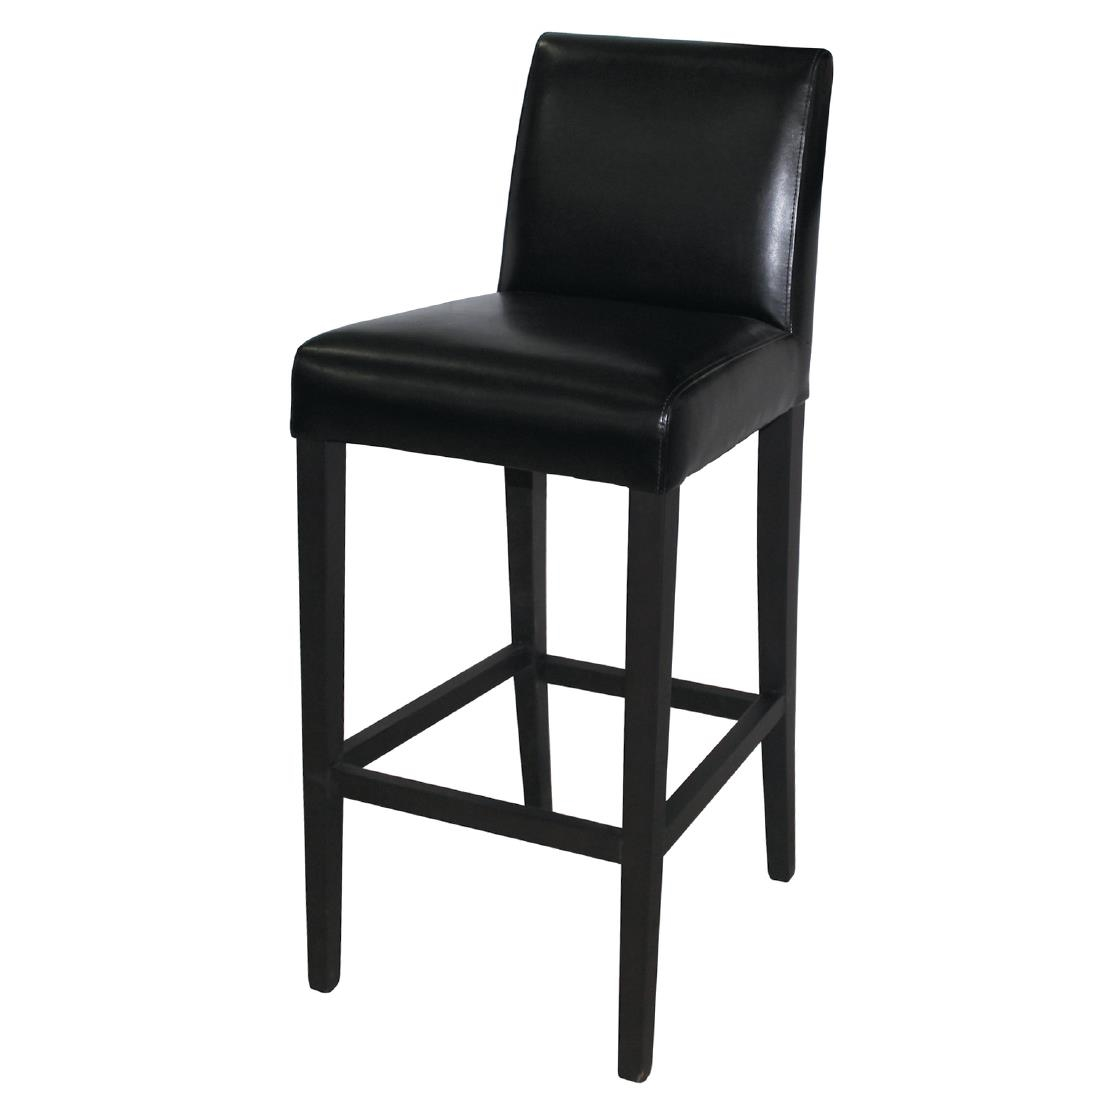 Black faux leather high bar stool with full back